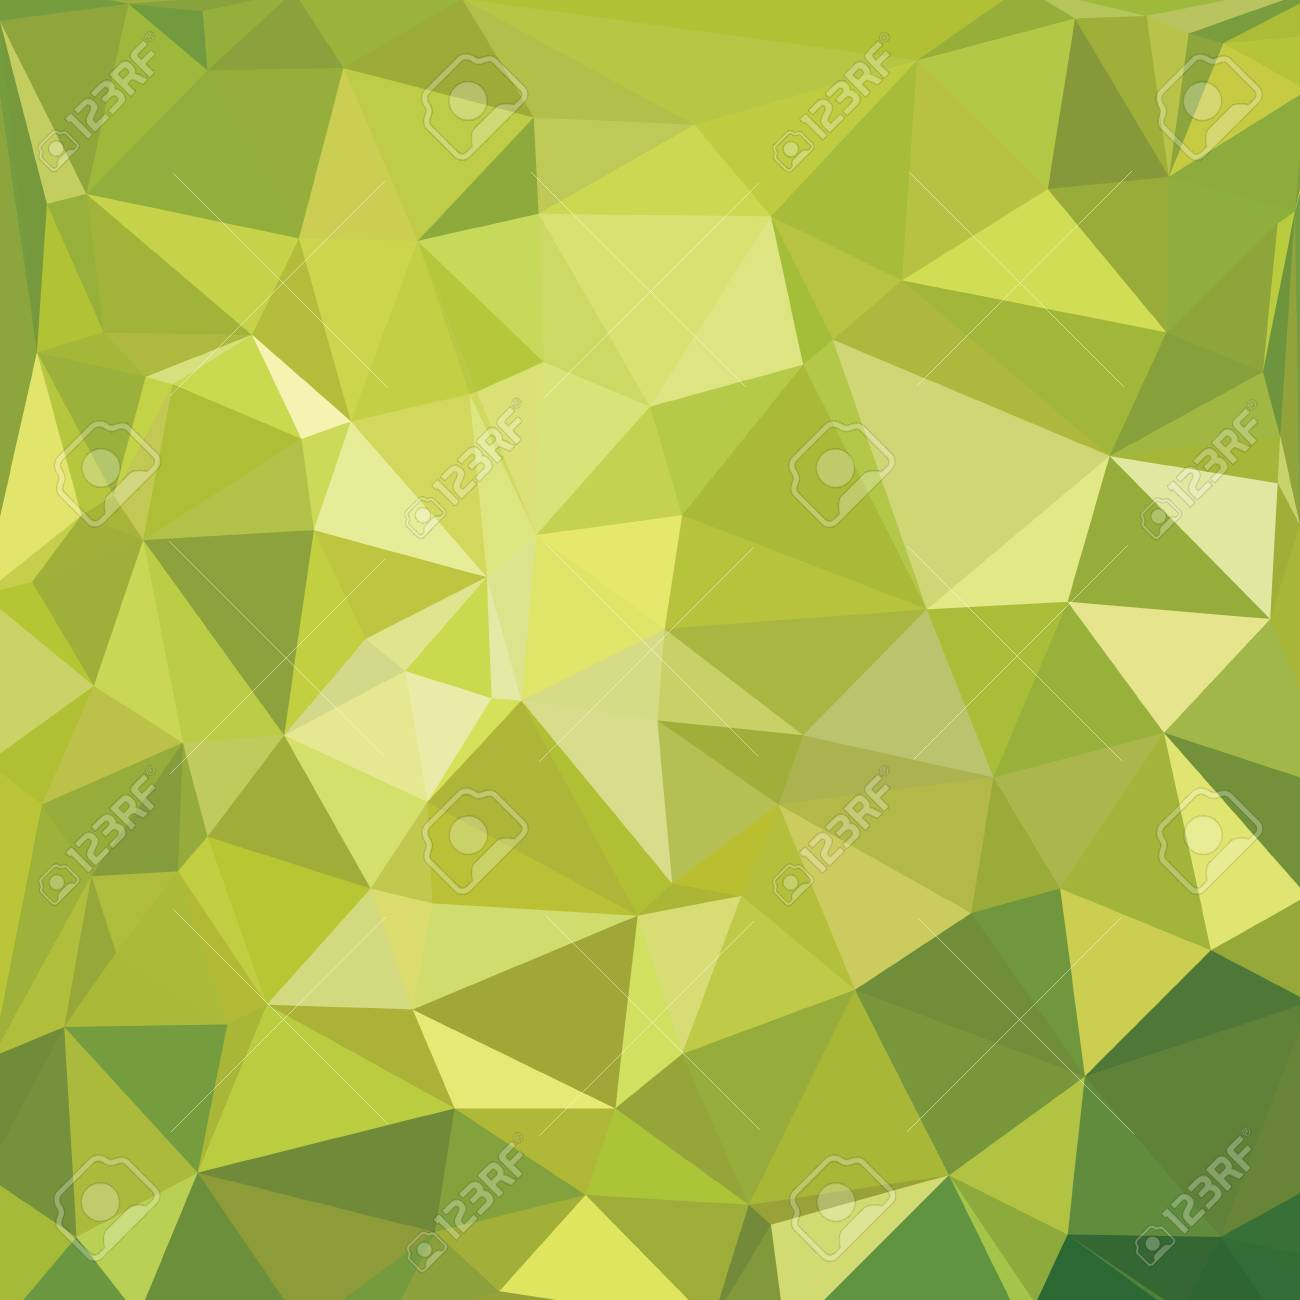 abstract background - 42507190